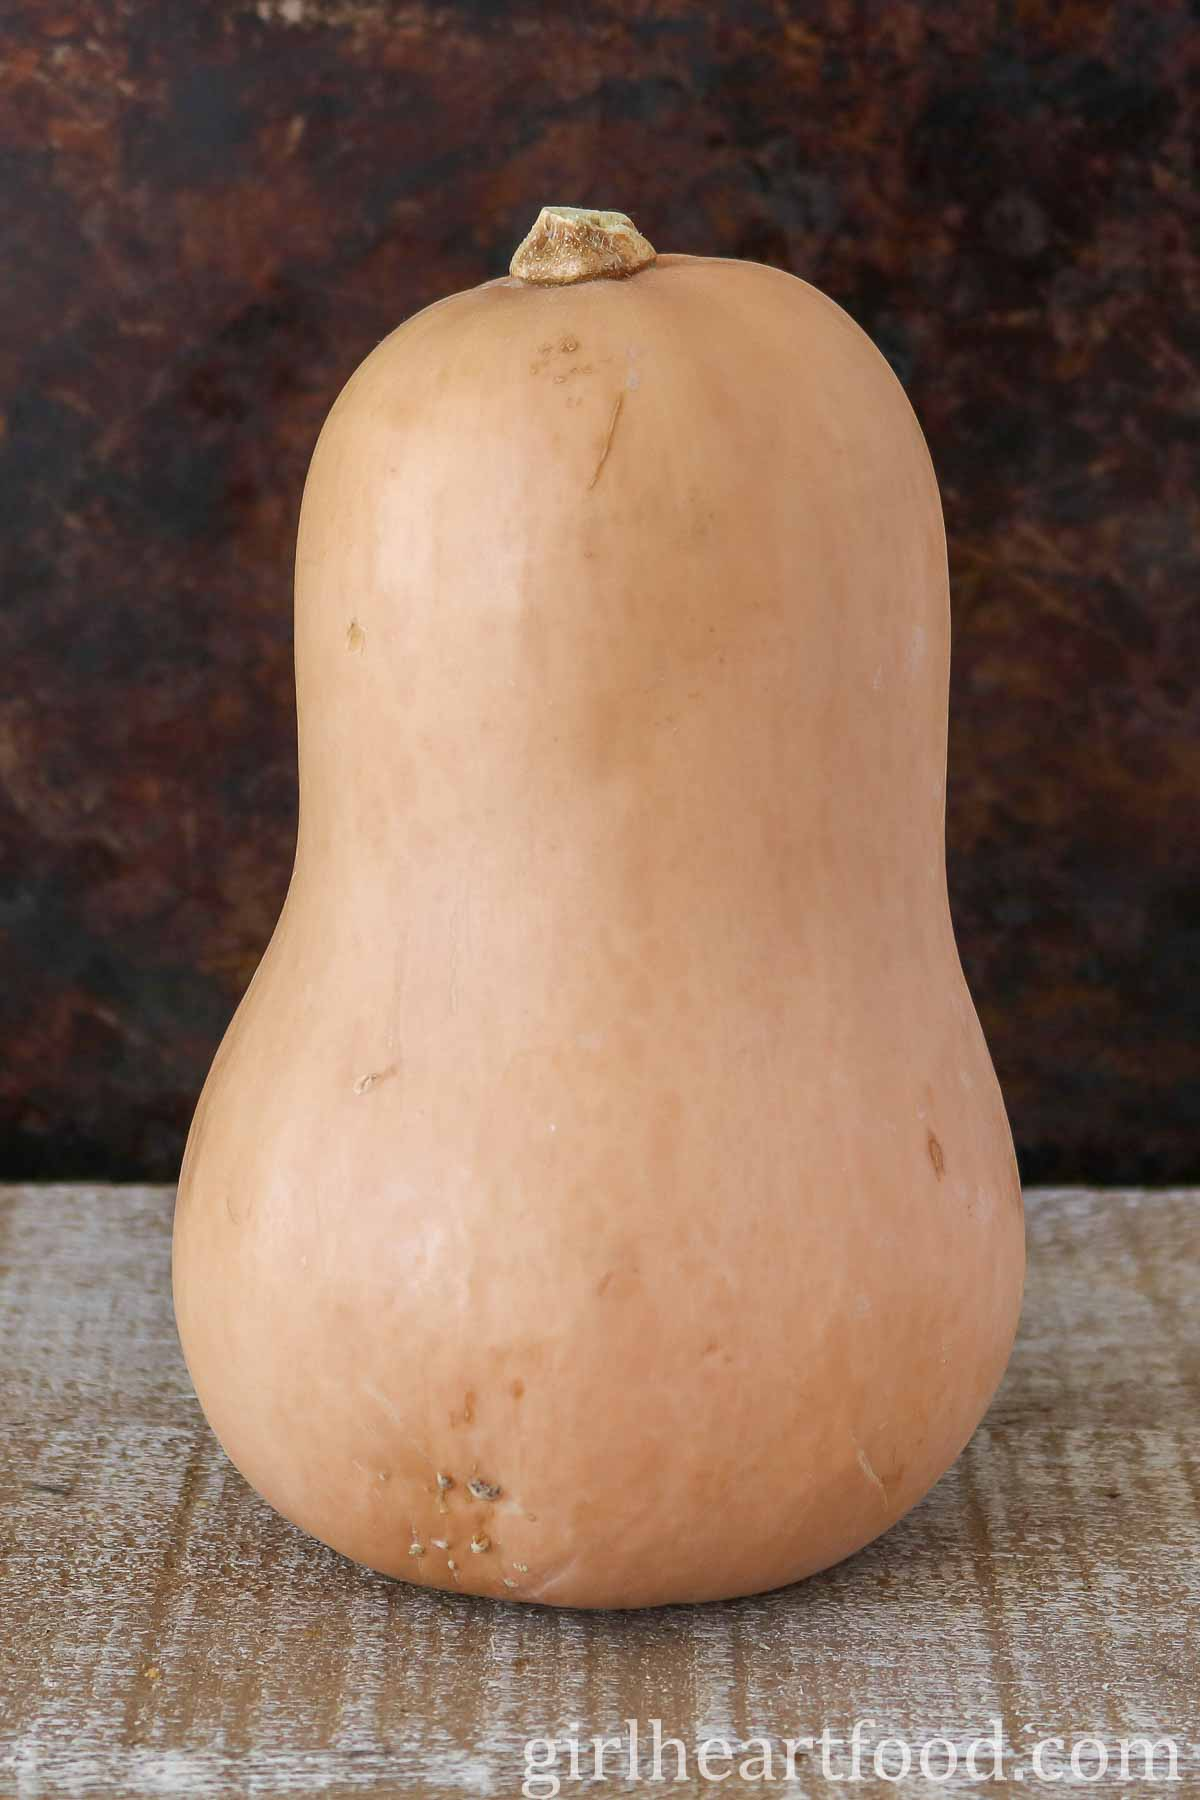 Close up of a whole butternut squash on a wooden board.